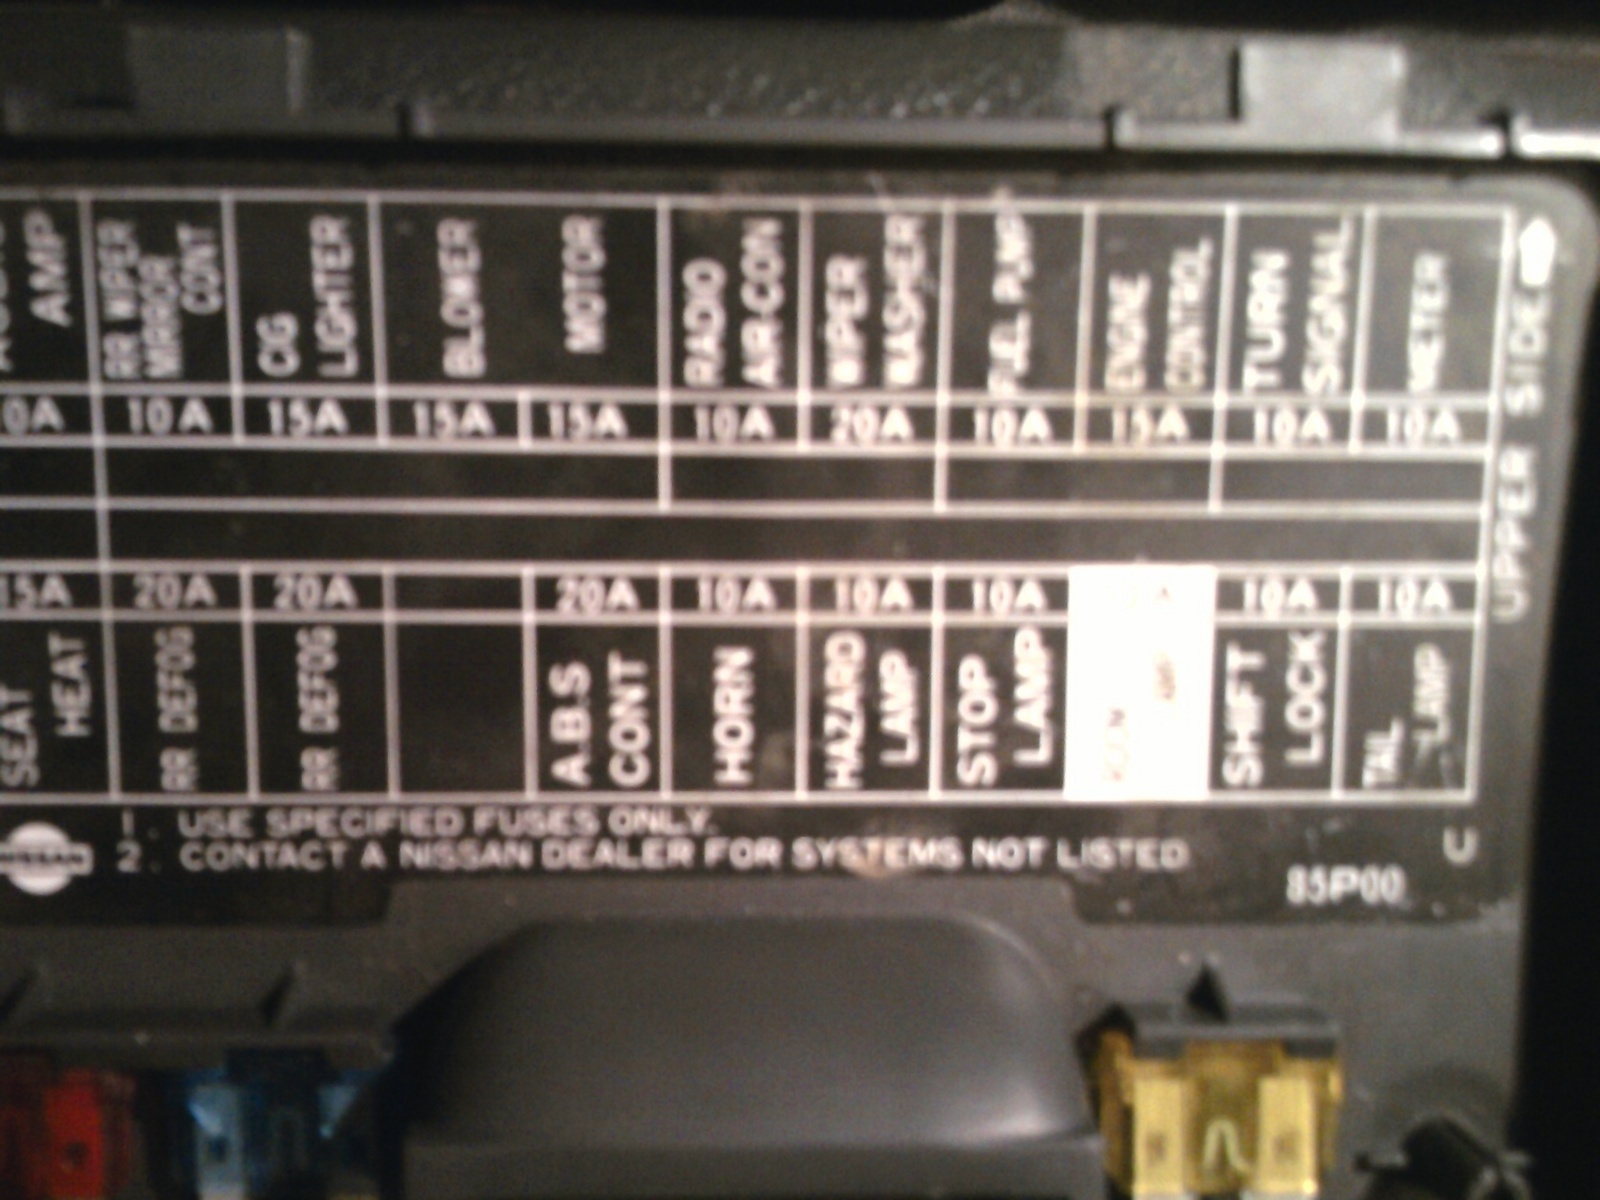 94 Toyota Fuse Box Diagram Wiring Library Mr2 Nissan Pickup Questions Where Is The For Hazard Lights On Rh Cargurus Com